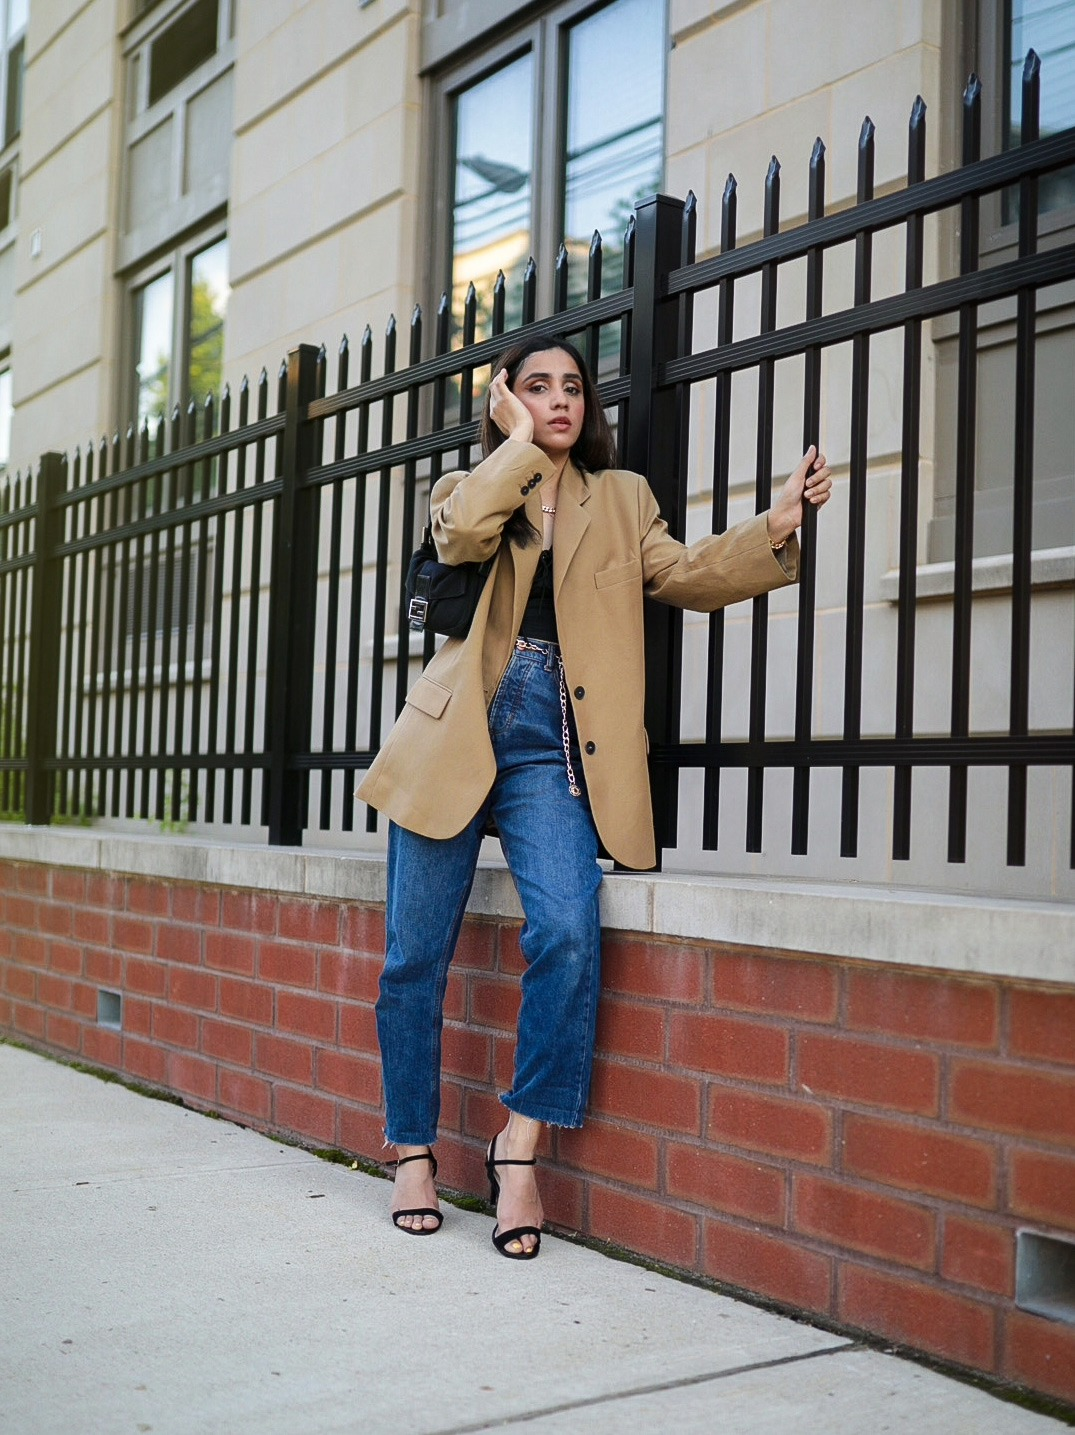 Under $50 Trends That Won't Disappoint This Summer blazer beige camel zara jeans classic look expensive look Faiza Inam pinterest 2